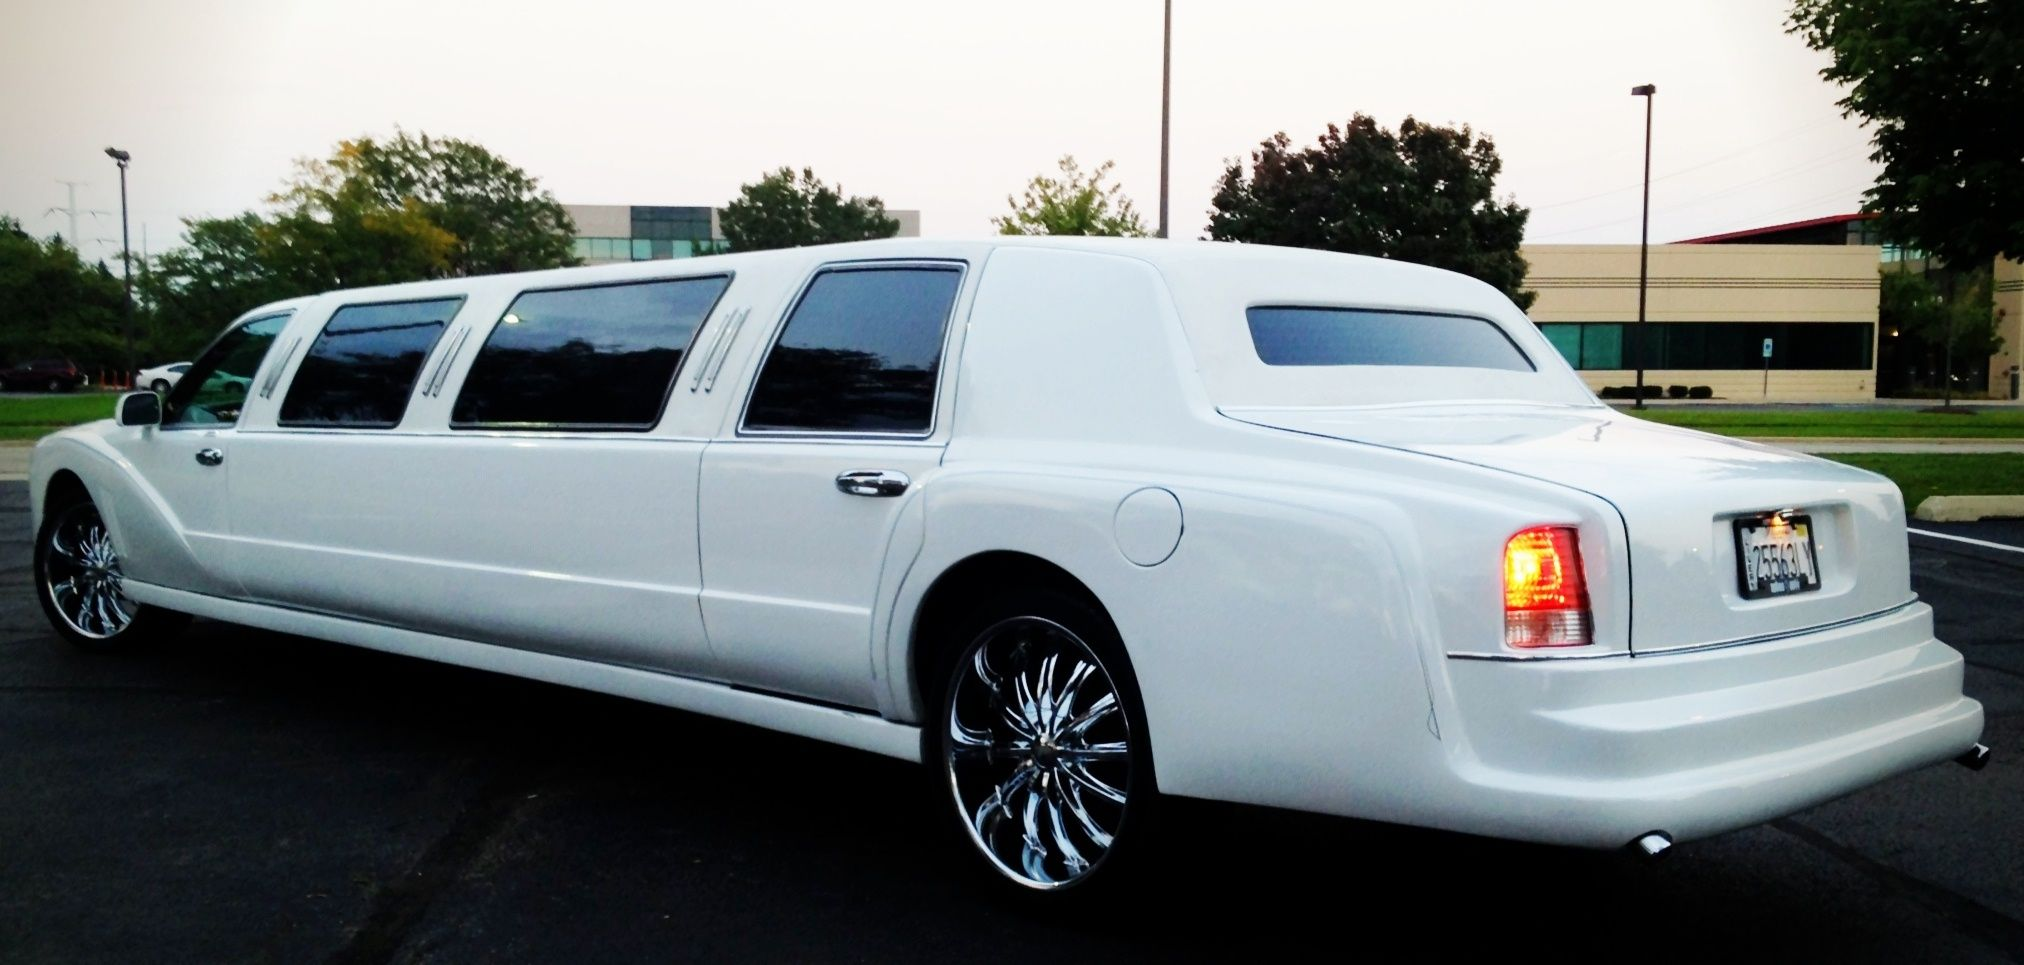 This 1012 passenger White Rolls Royce is ready to be